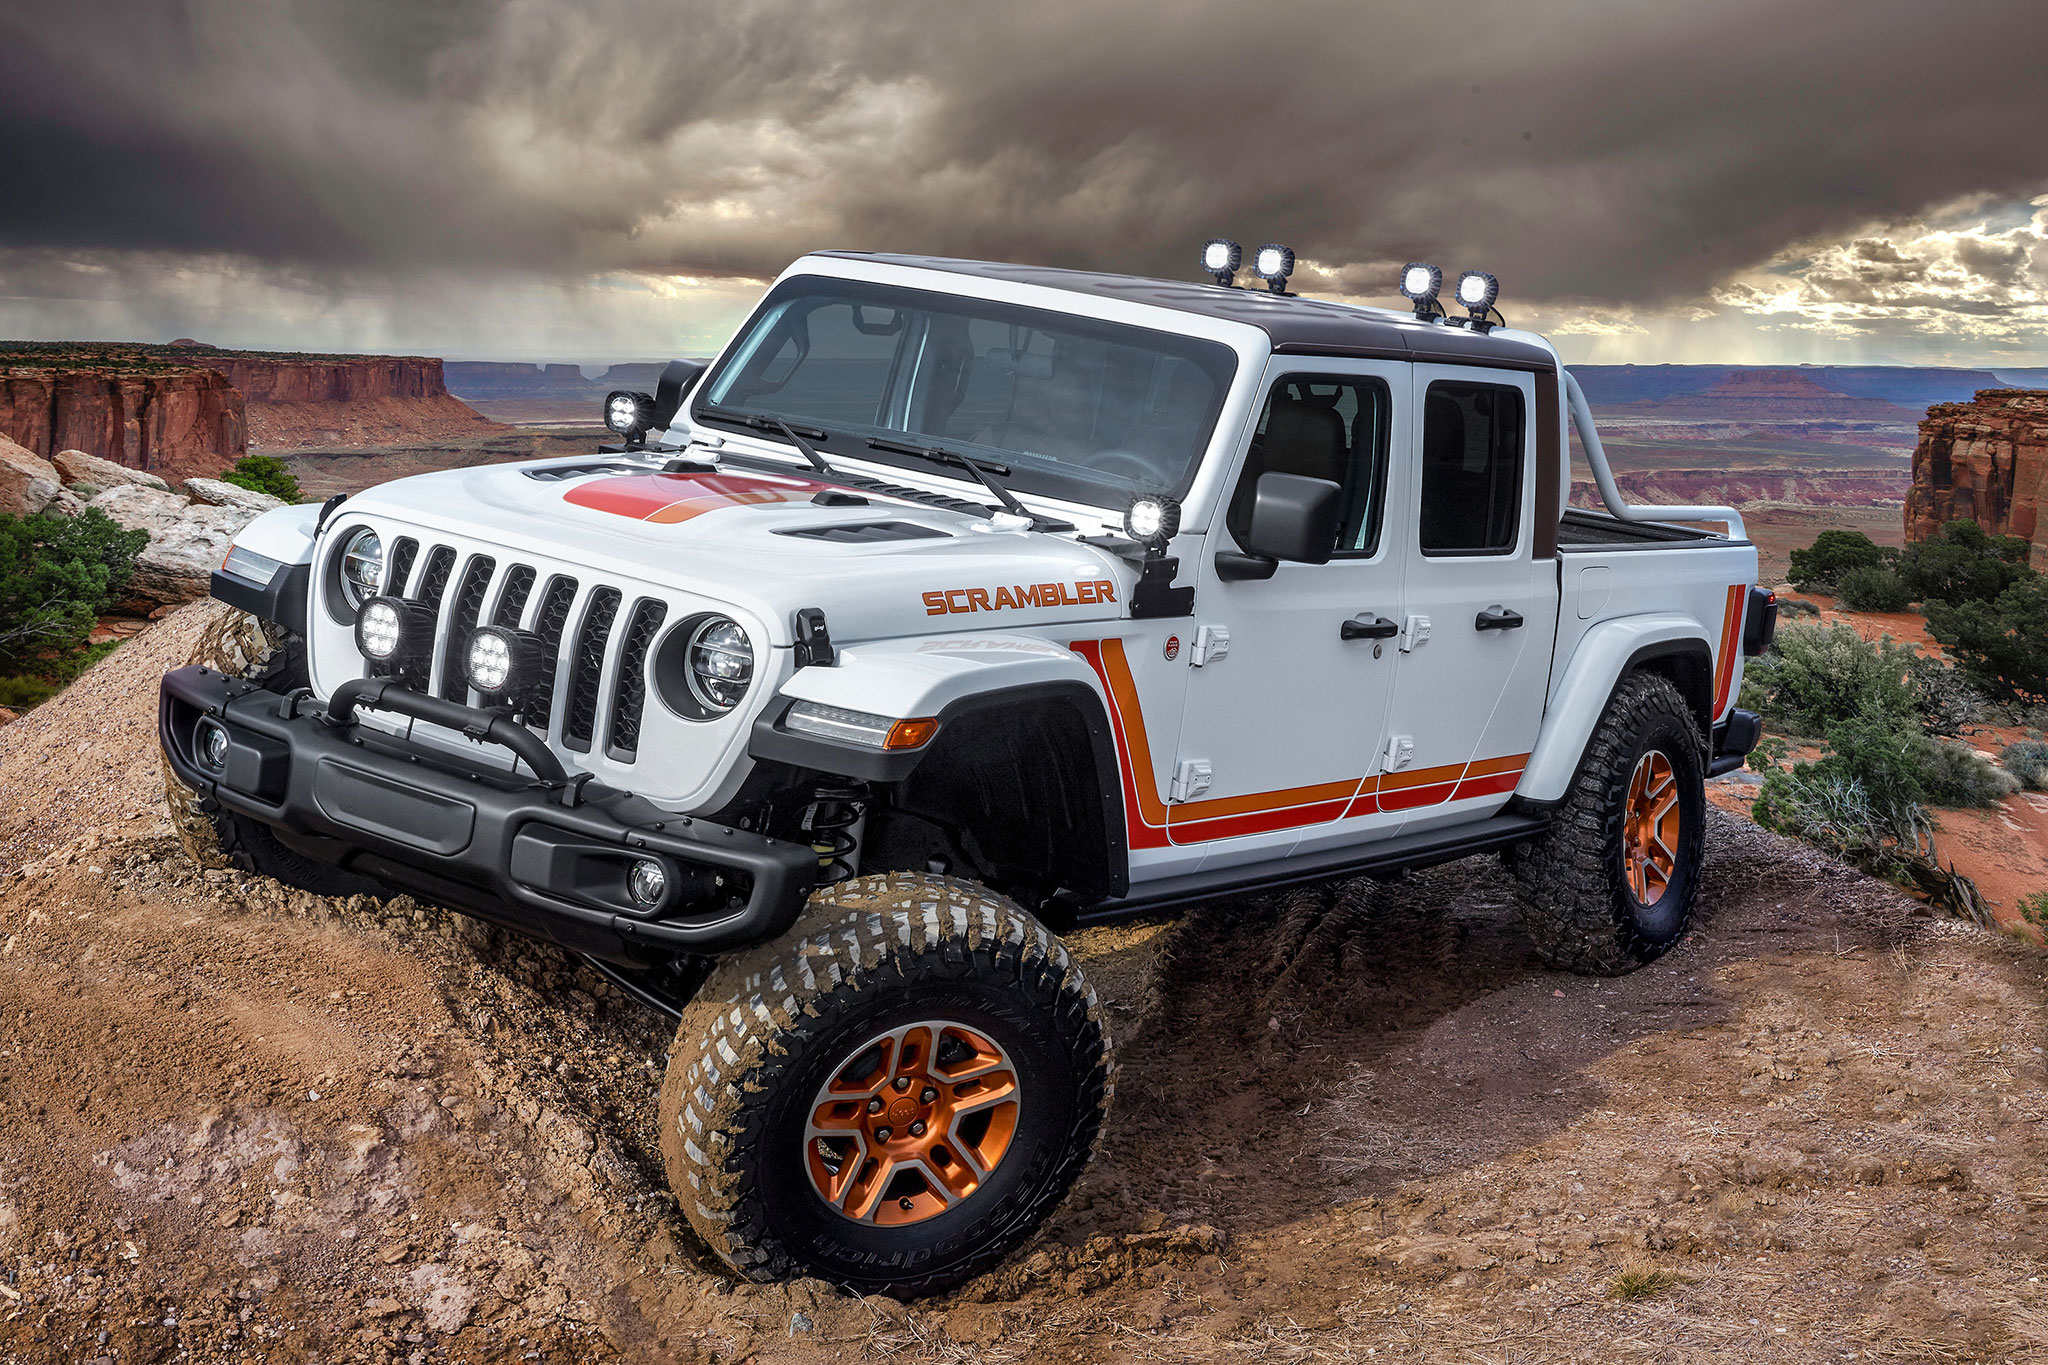 2019 Jeep JT Scrambler les bandes Punk'N Mettalic Orange et Nacho courent le long des bas de caisse - Moab Easter Jeep Safari.